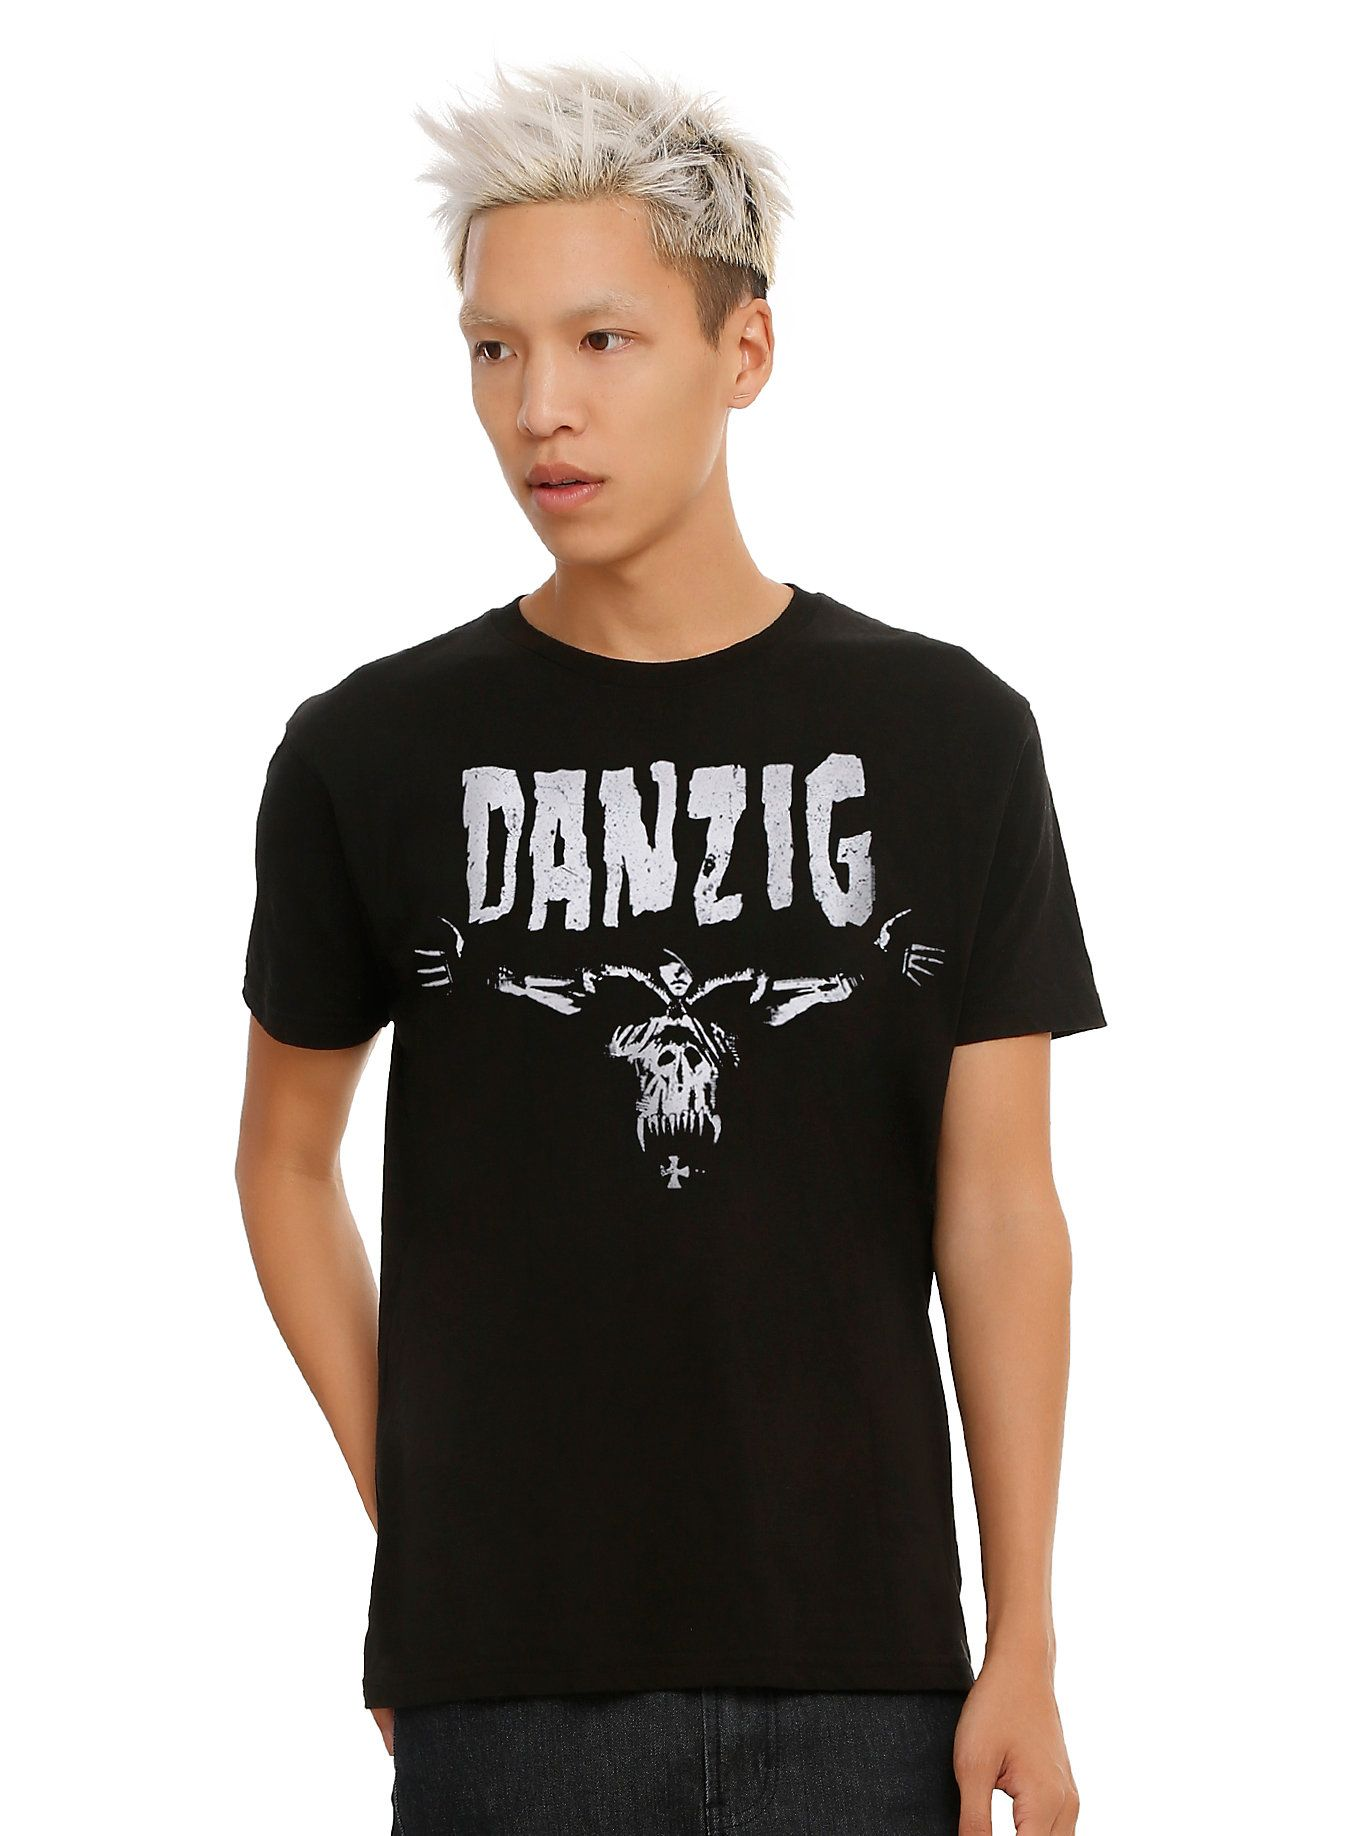 Danzig Outstretched T-Shirt http://www.hottopic.com/product/danzig-outstretched-t-shirt/10522612.html